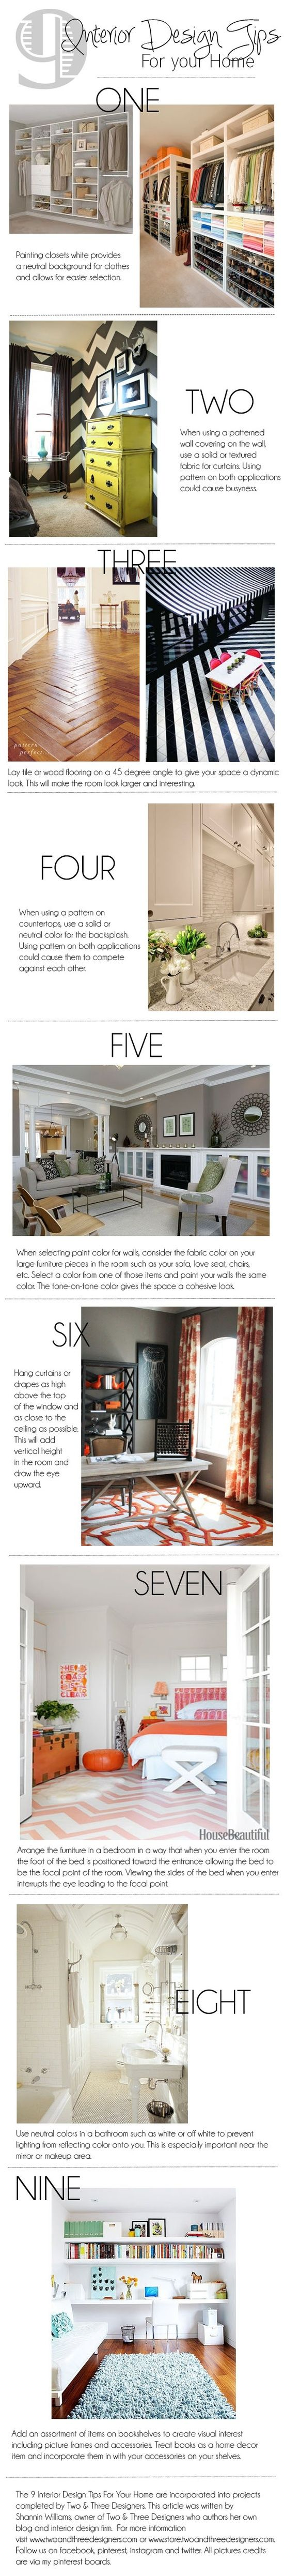 9 Interior Design Tips for your Home from Two: 9 Interior Design Tips for your Home from Two